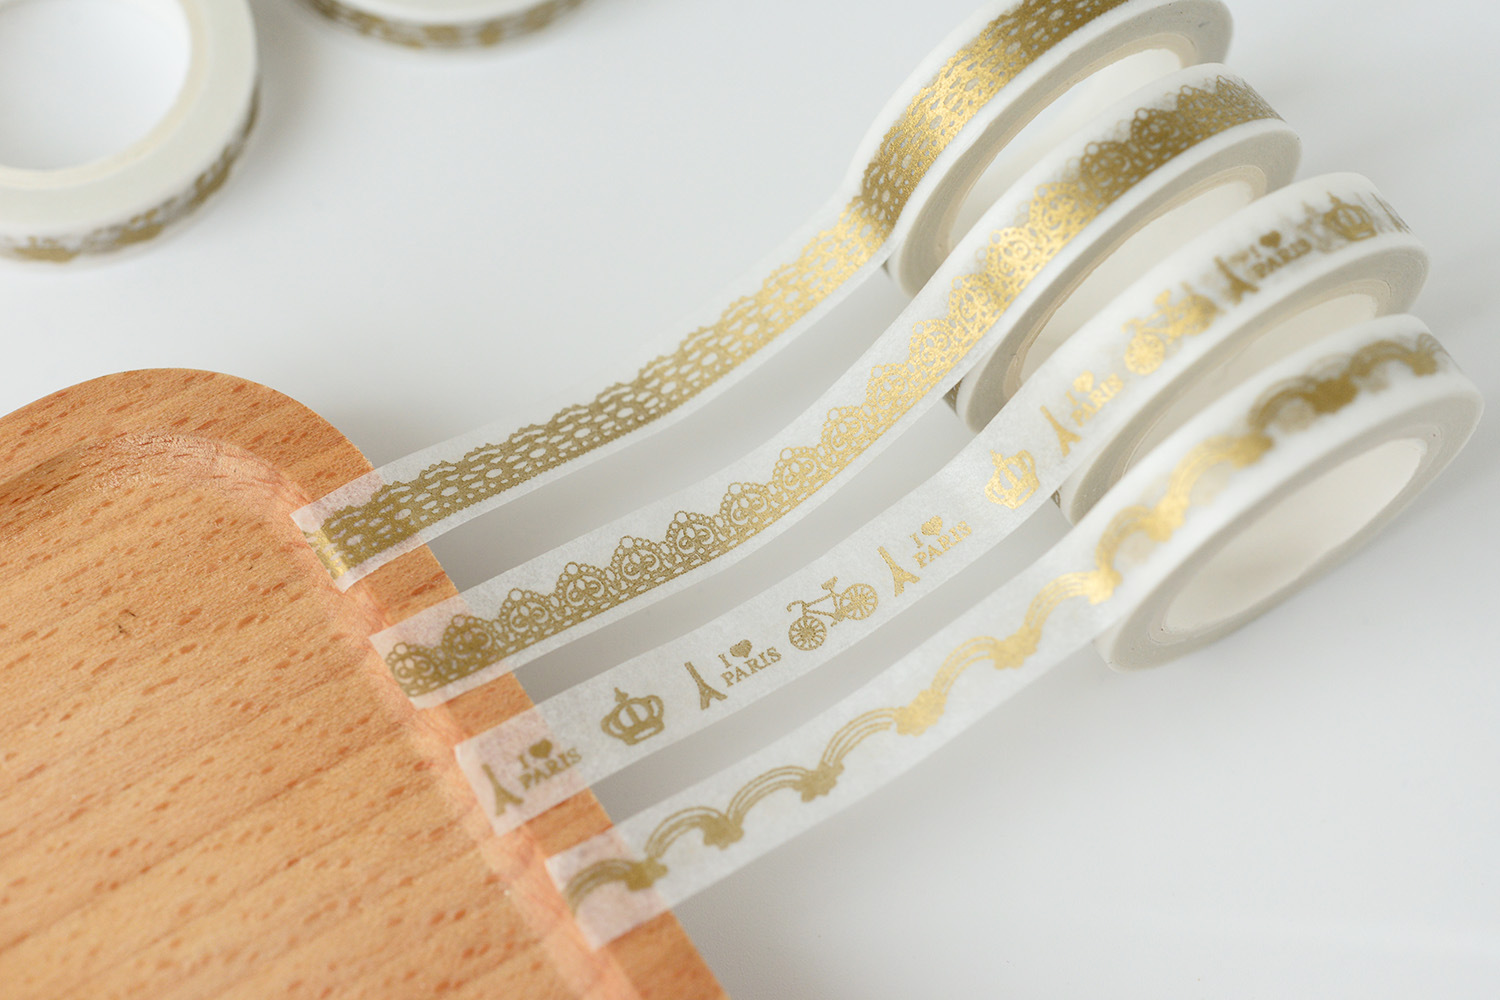 Kawaii Gold Foil Washi Tape Stickers Scrapbooking Masking Tape Decorative Adhesive Tape For School Office Stationery 15 pcs lot cloth adhesive tape masking japanese tape cotton decorative scrapbooking stickers novelty school supplies